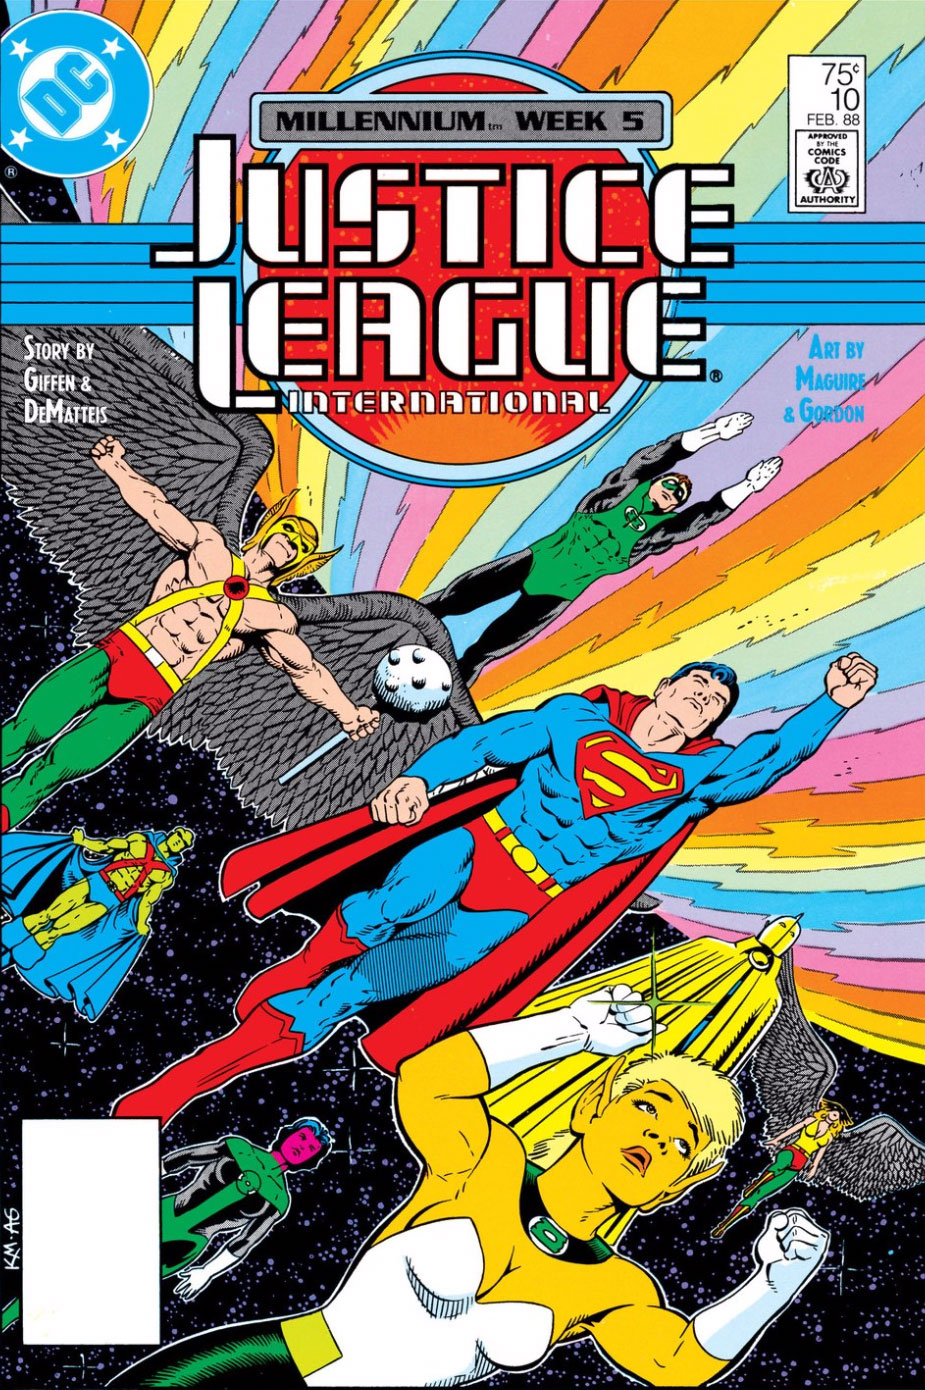 Justice League International #10 cover by Kevin Maguire and Al Gordon